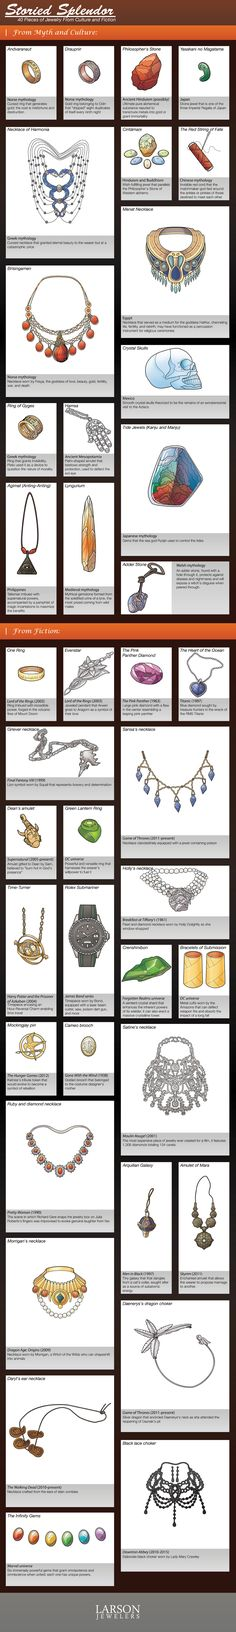 Storied Splendor: 40 Pieces of Jewelry From Culture and Fiction - larsonjewelers.com -  Infographic